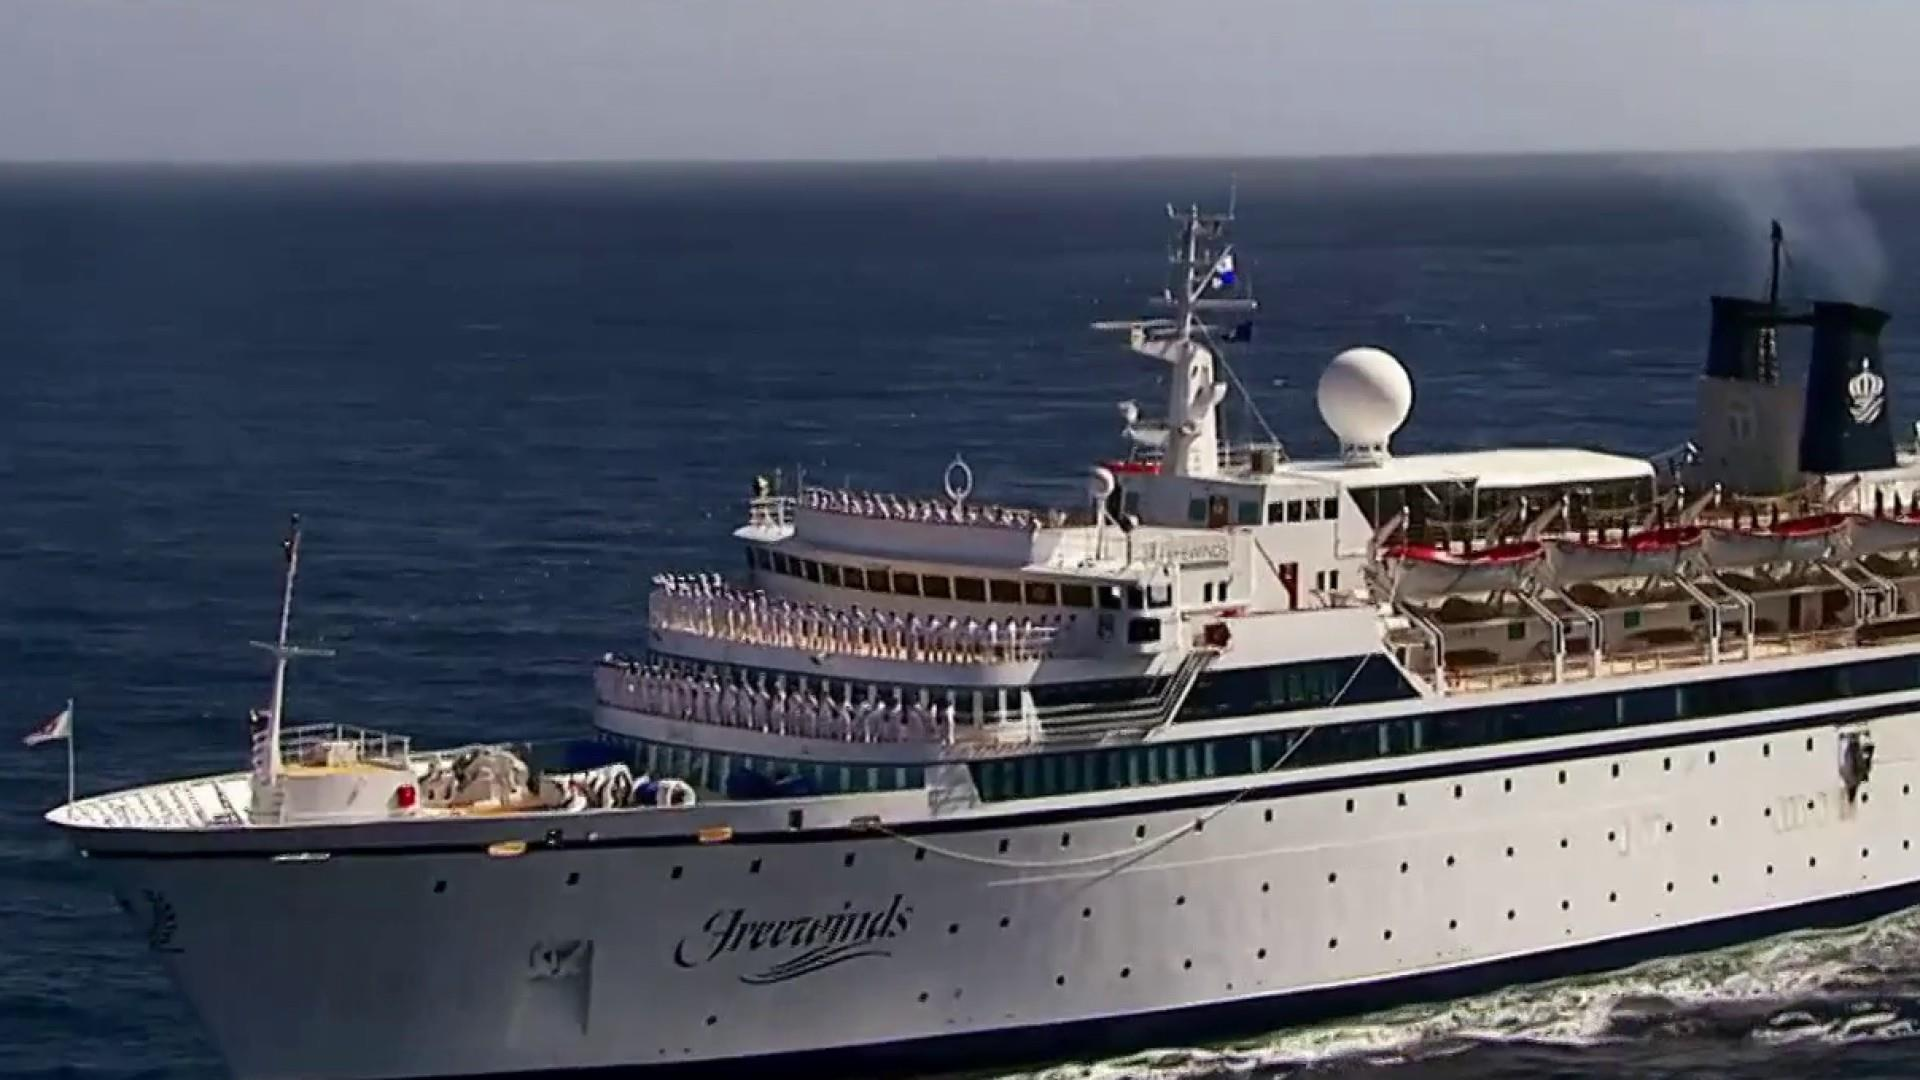 Measles scare: Packed theatre possibly exposed, cruise ship quarantined in Caribbean